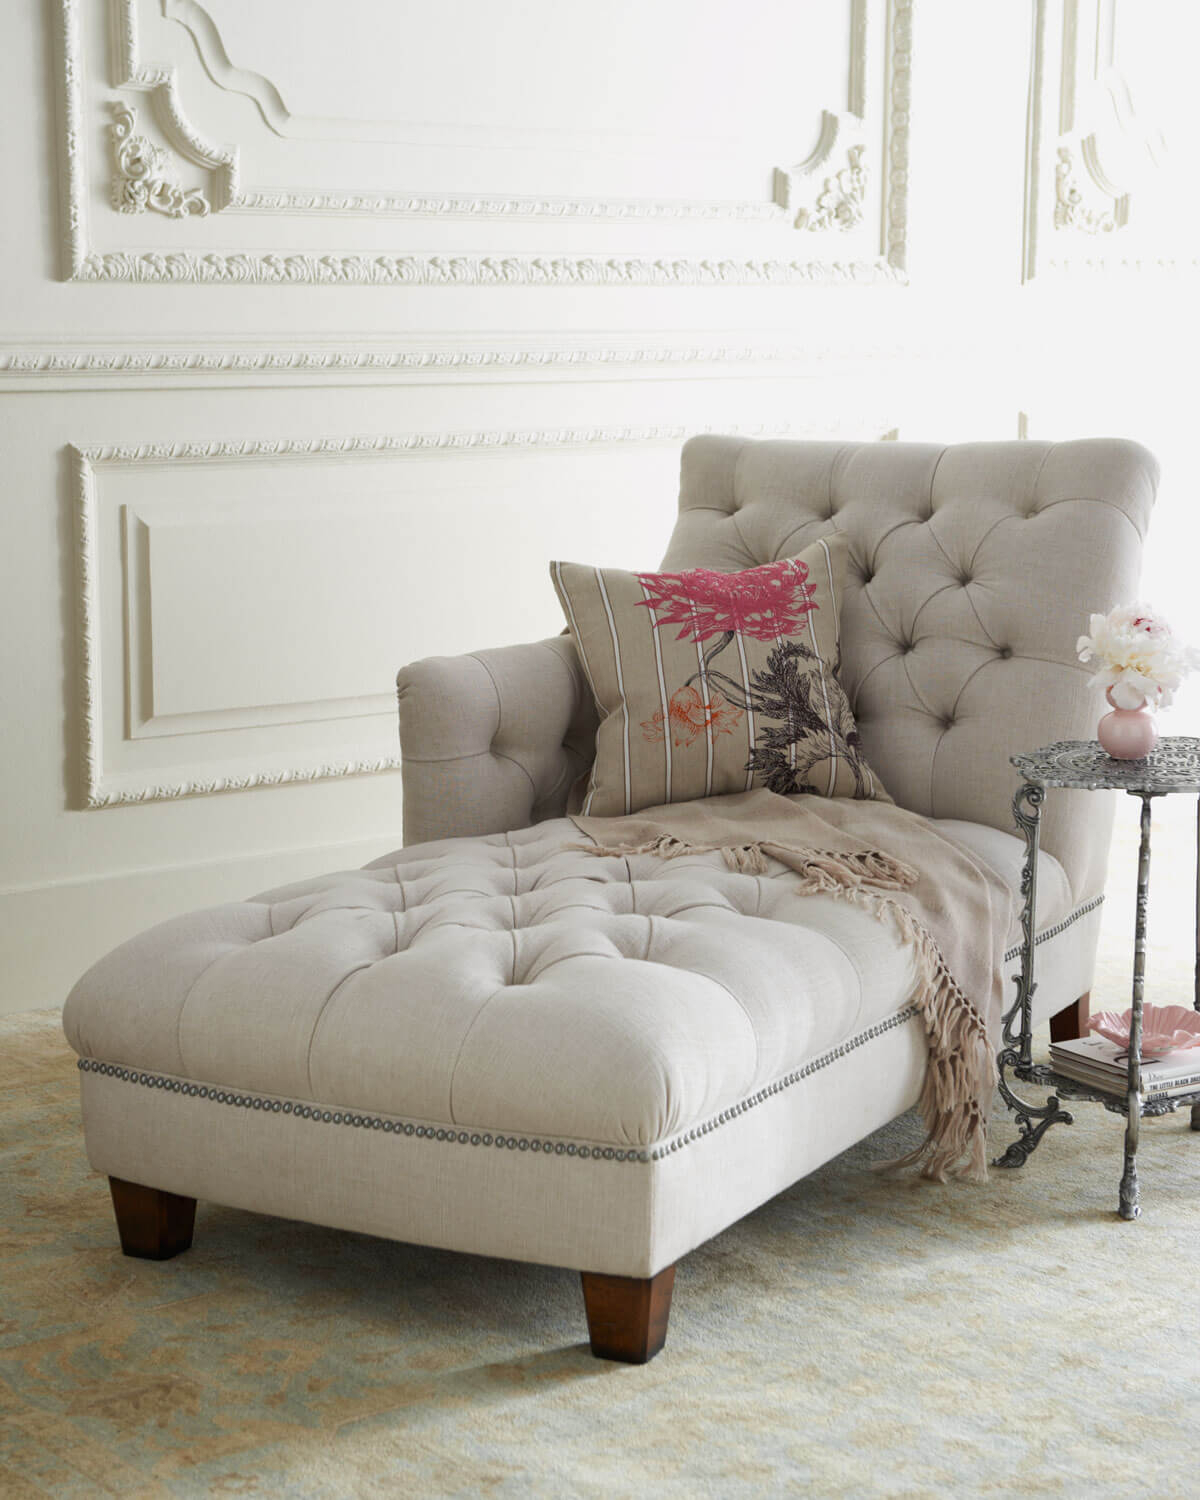 Bedroom Chaise Lounges - Ideas on Foter